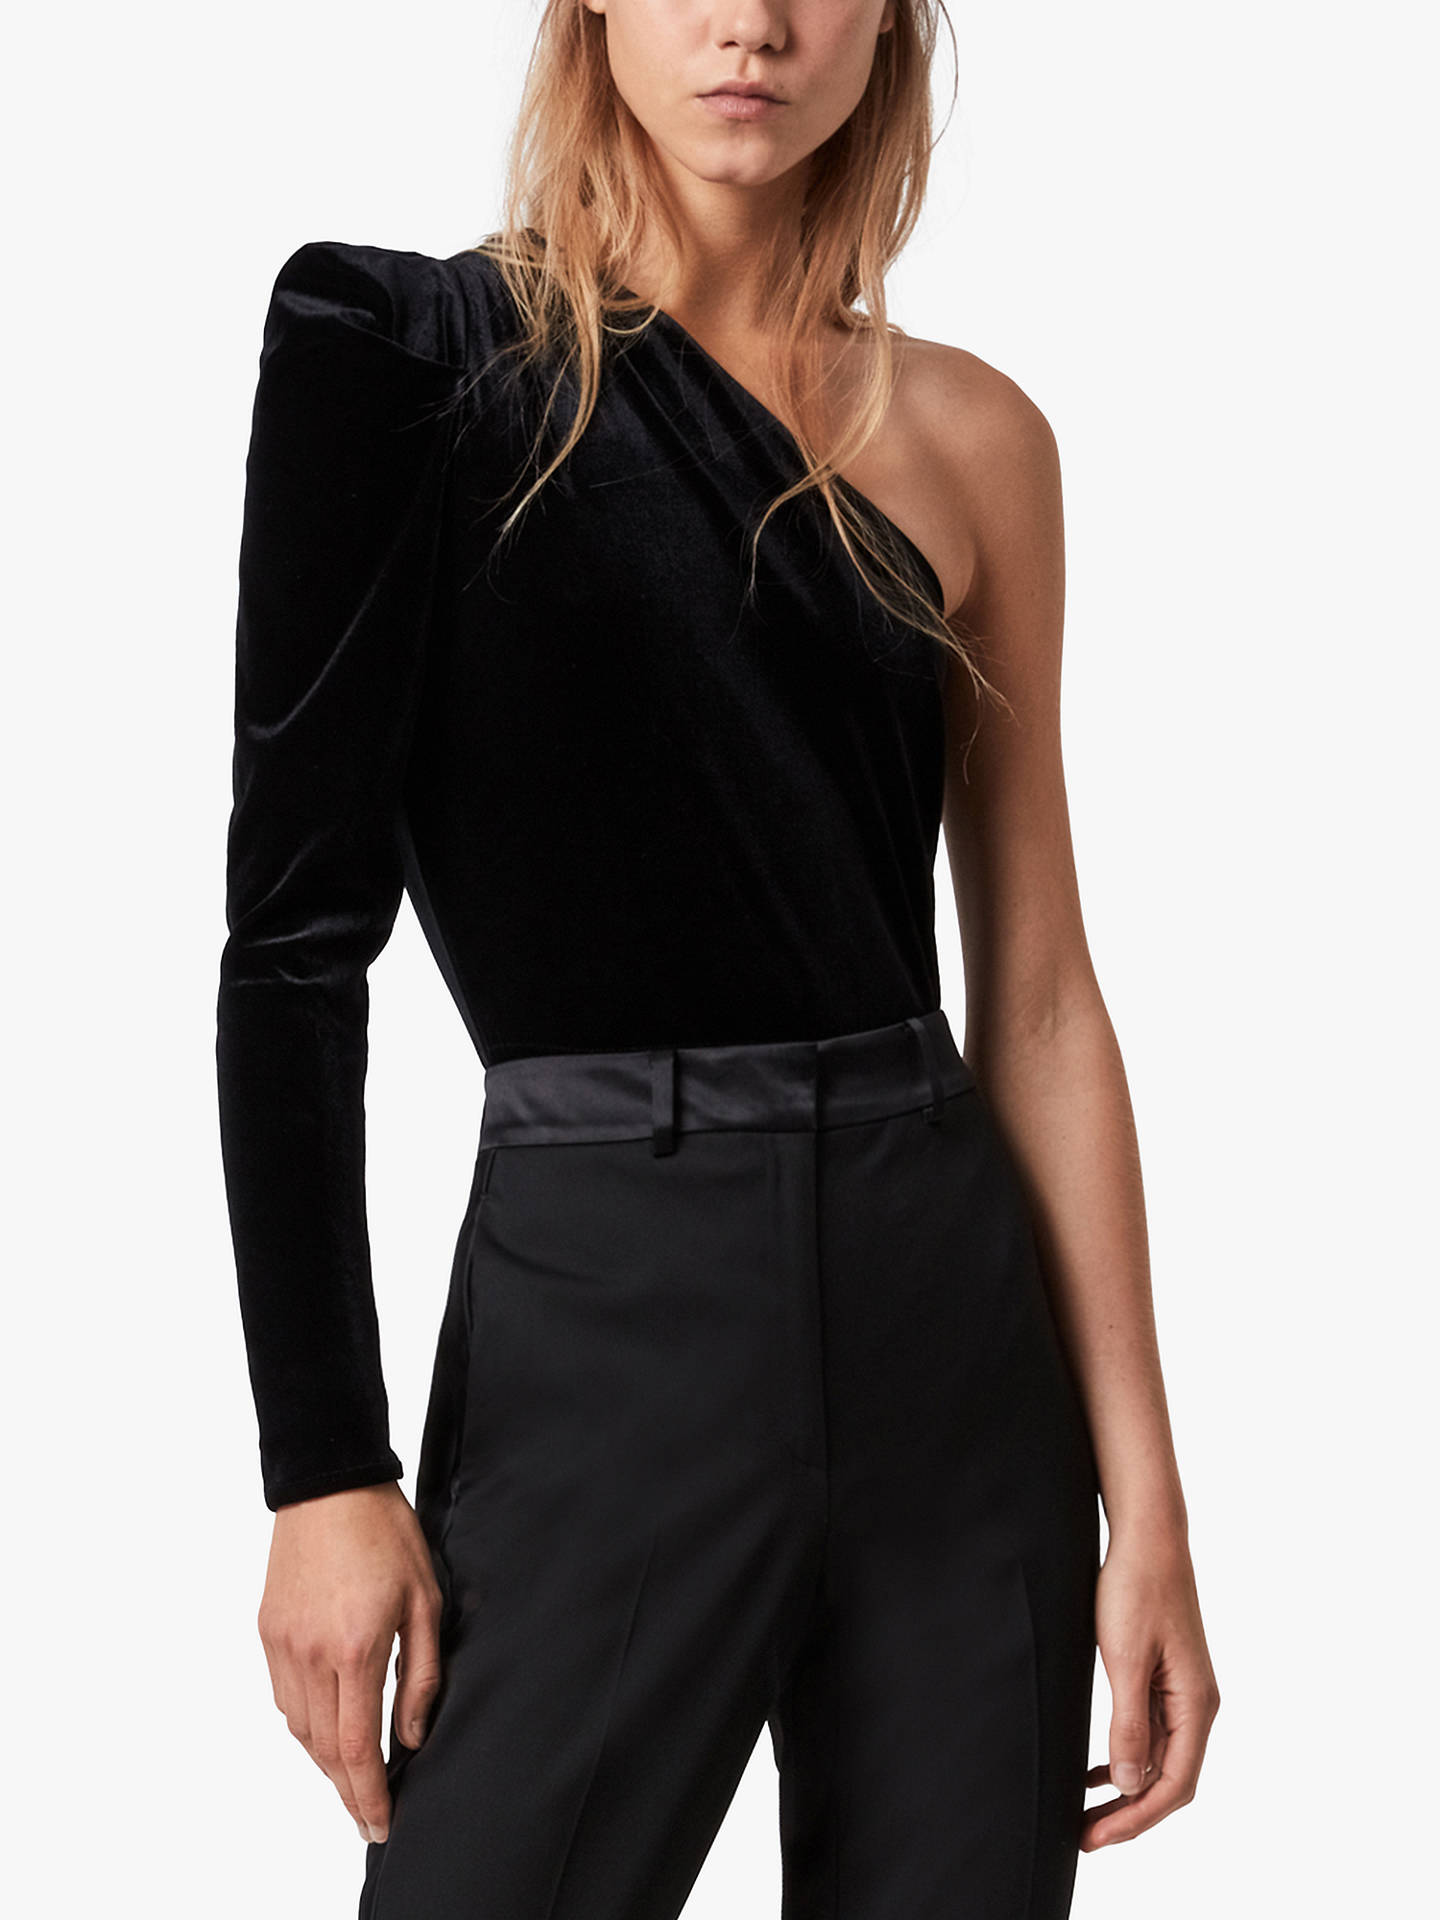 Buy AllSaints Daphne Velvet One Shoulder Bodysuit, Black, 12 Online at johnlewis.com